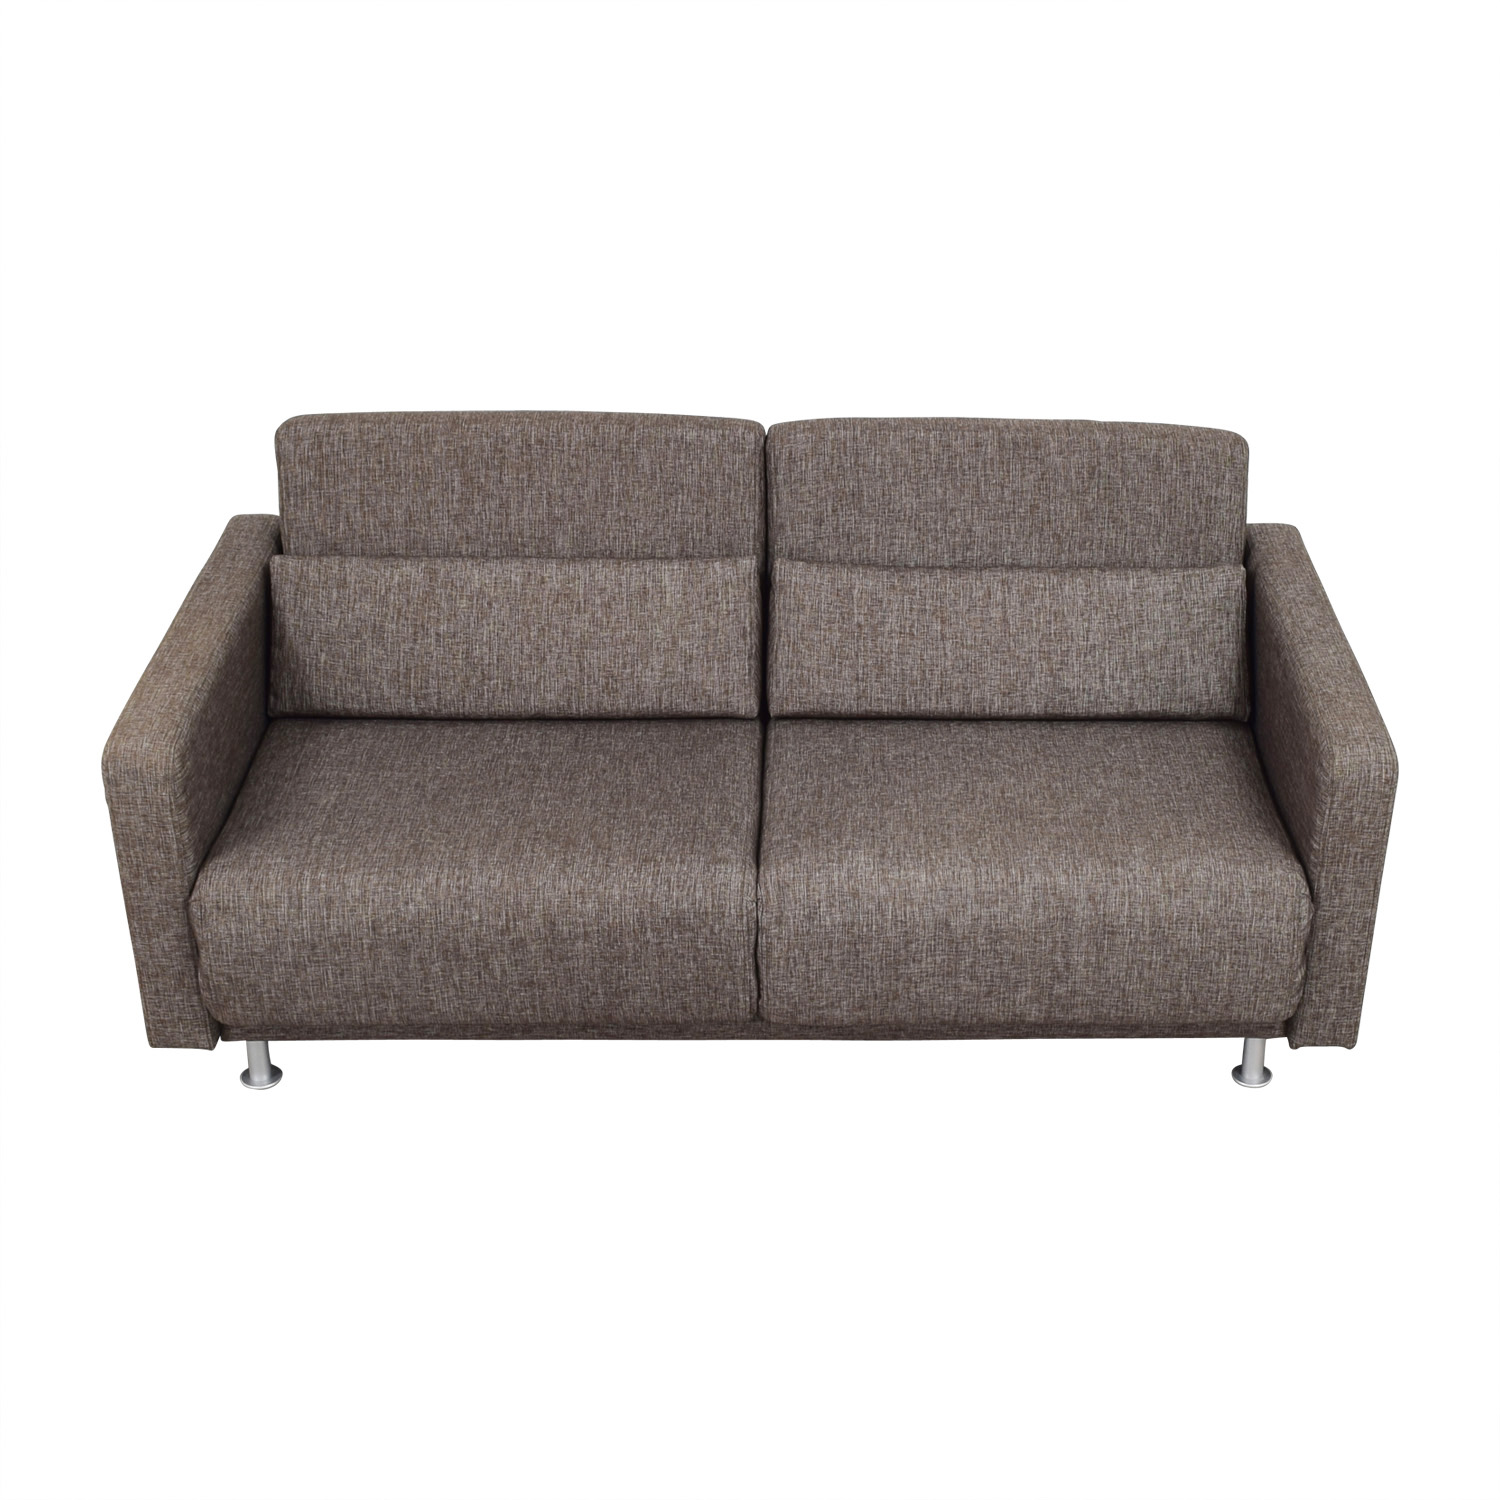 Boconcept melo sofa bed for Second hand schlafsofa